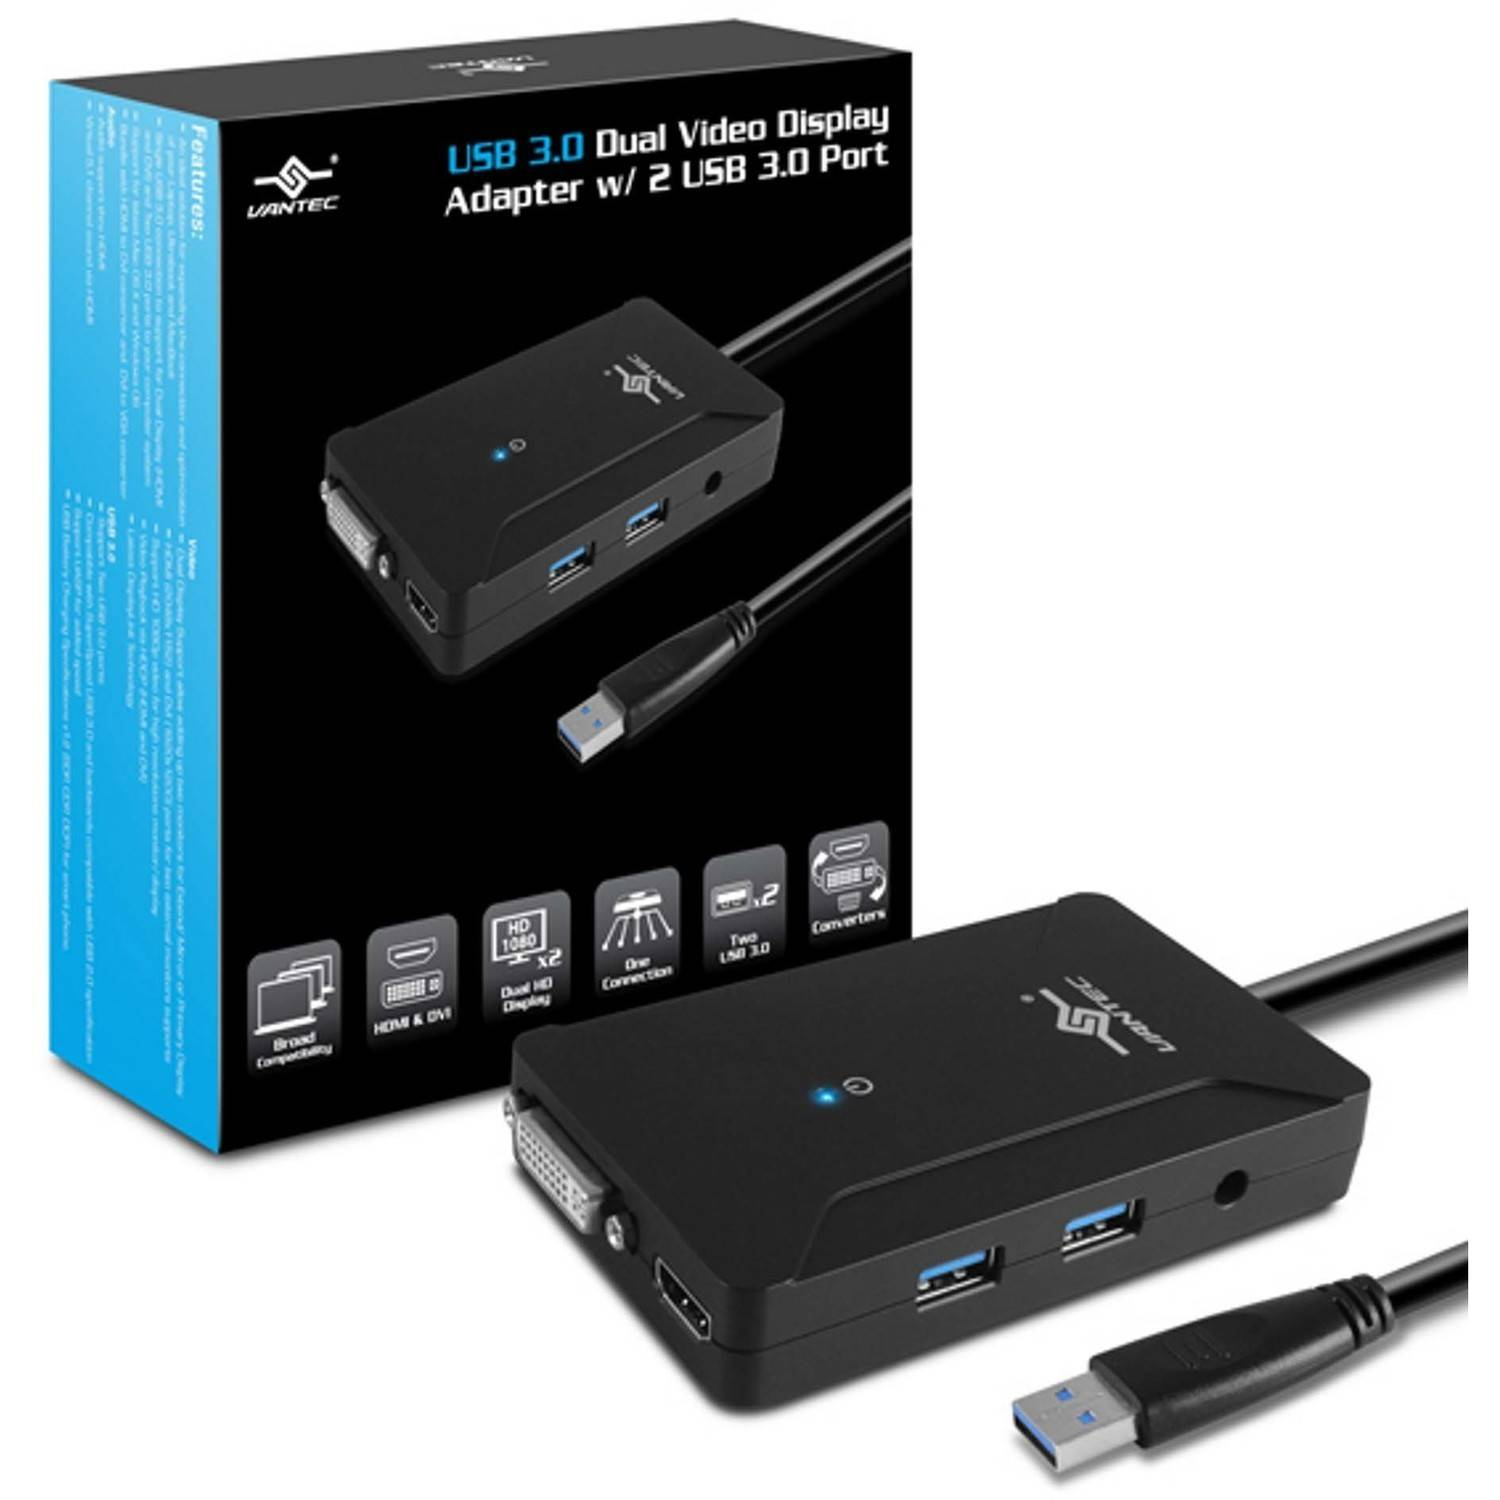 Vantec NBV-320U3 USB 3.0 Dual Video Display Adapter with USB Ports, Black